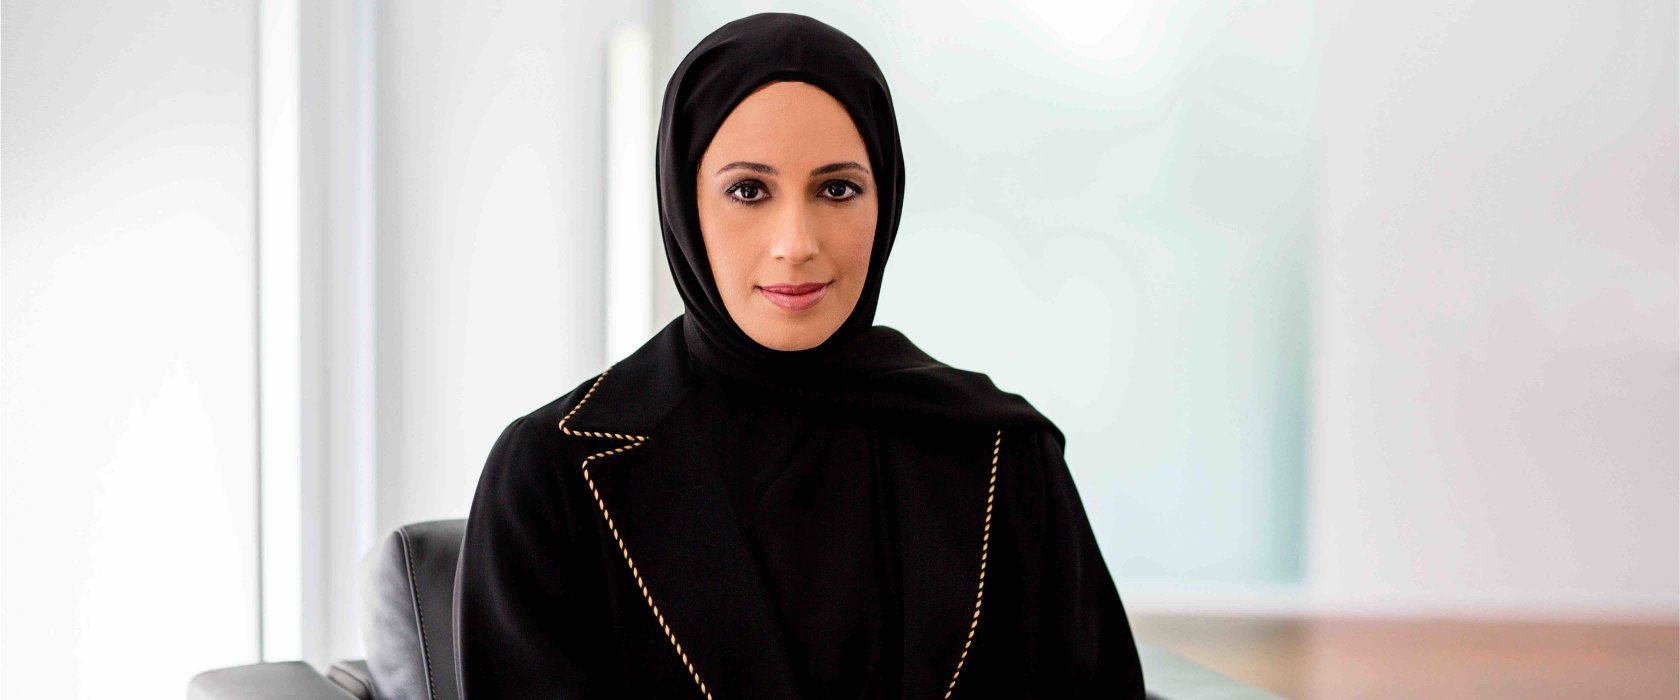 'Identity, culture and heritage, and values are integral to education at Qatar Foundation'